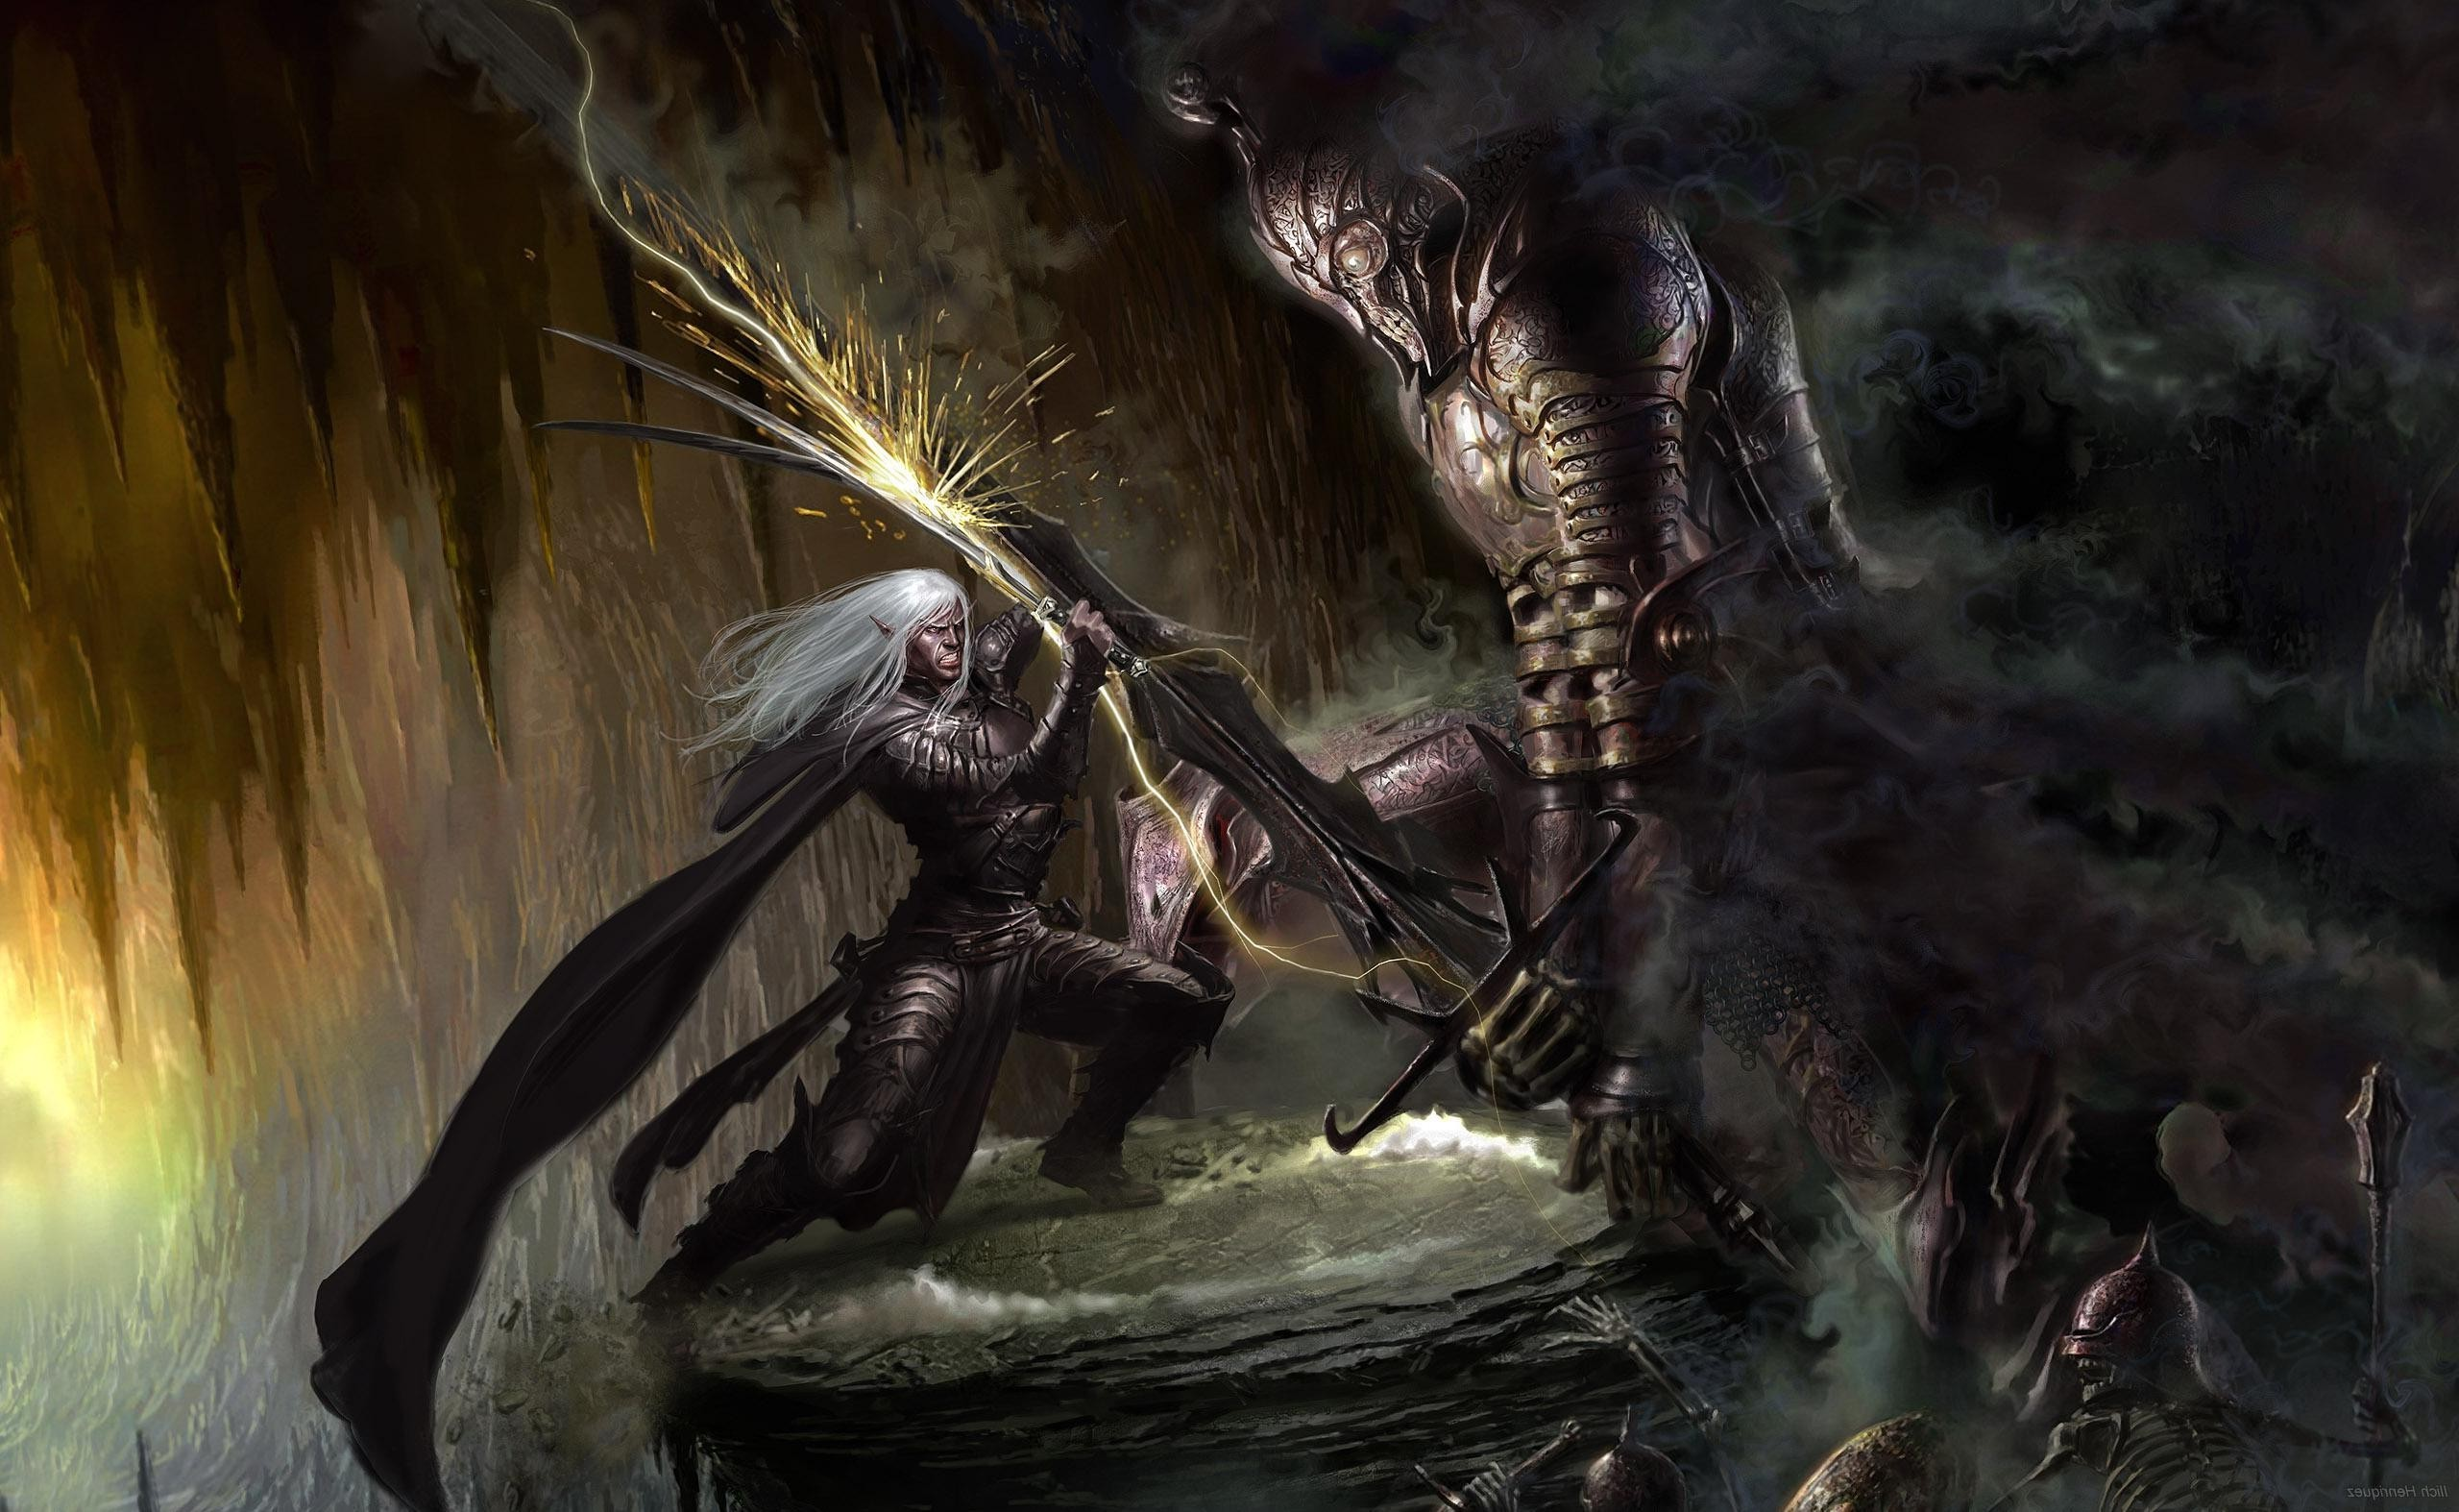 Dungeons And Dragons Wallpaper Hd: Drizzt Wallpapers ·①